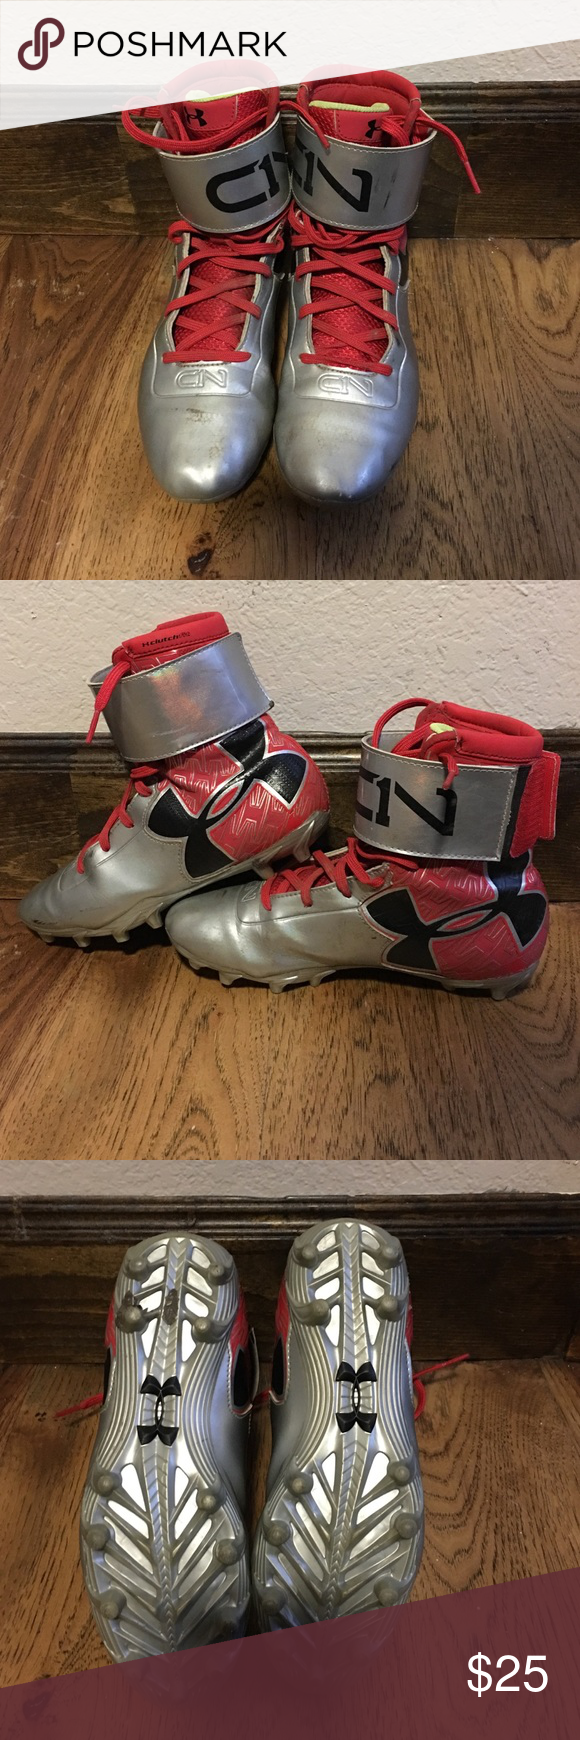 b78d0562d Cam Newton Under Armour cleats. Boys size 4 football cleats. Worn for one  season. Great condition. Under Armour Shoes